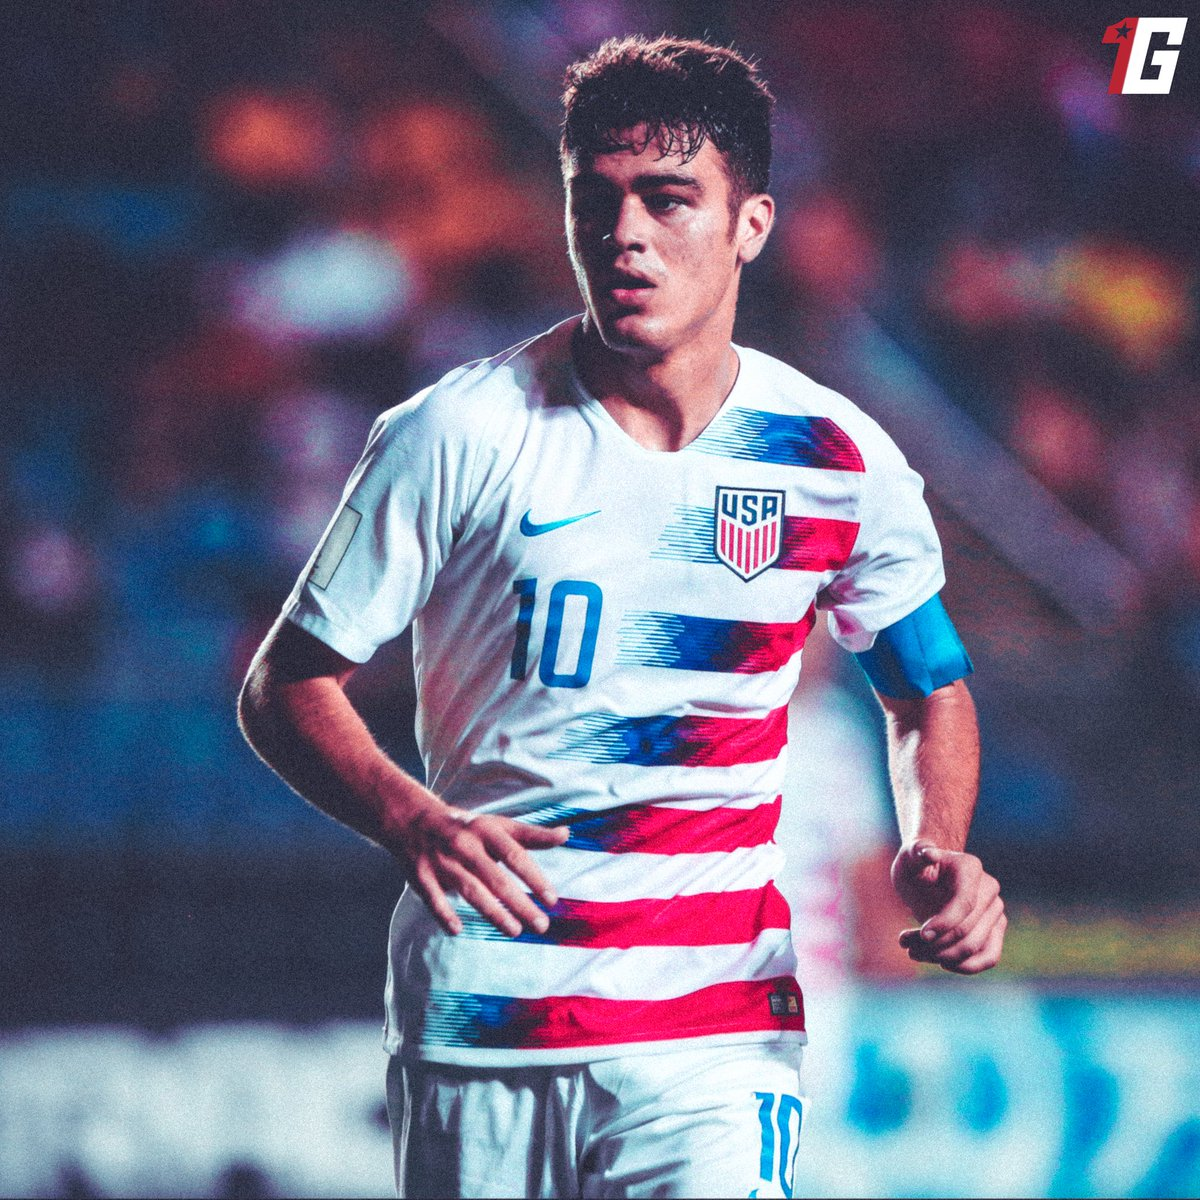 🚨 To celebrate that the USMNT is back, we are giving away a Gio Reyna USMNT jersey.   To enter the raffle:   1. Follow  2. Retweet   Winner will be announced two hours before kick off vs. Wales.